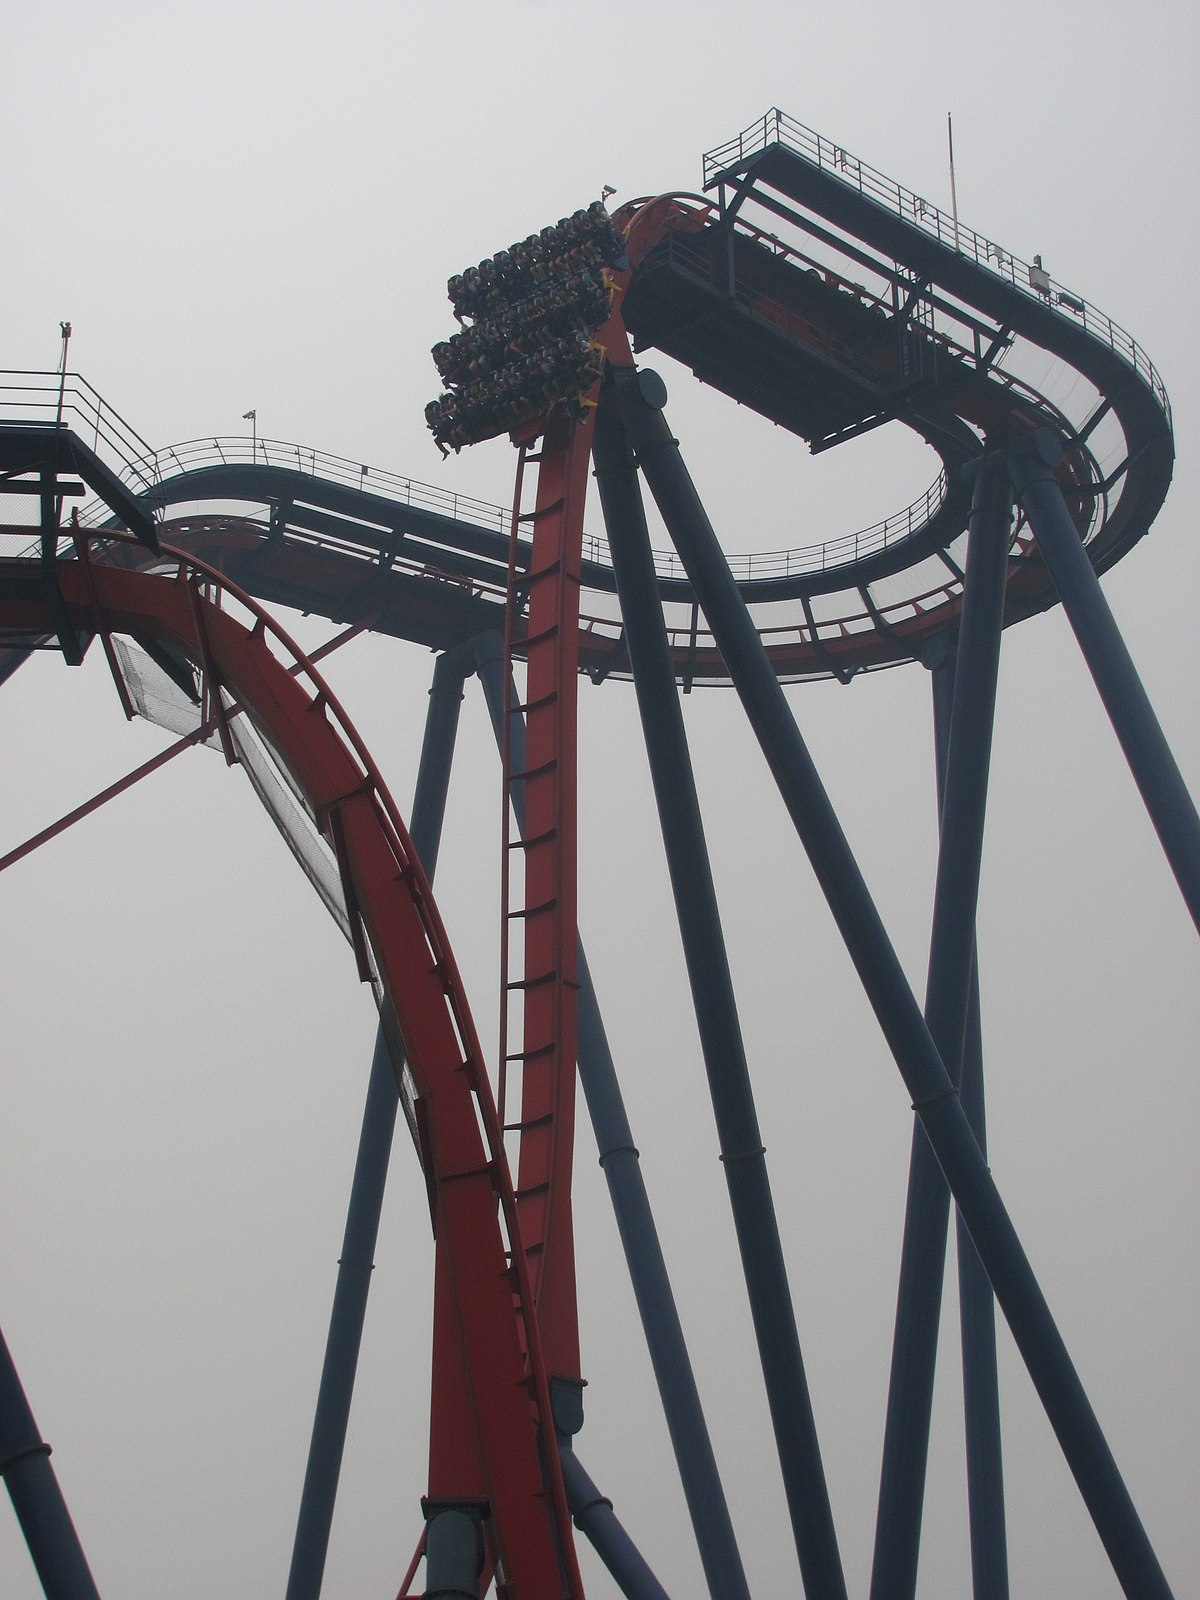 Diving Coaster Wikipedia